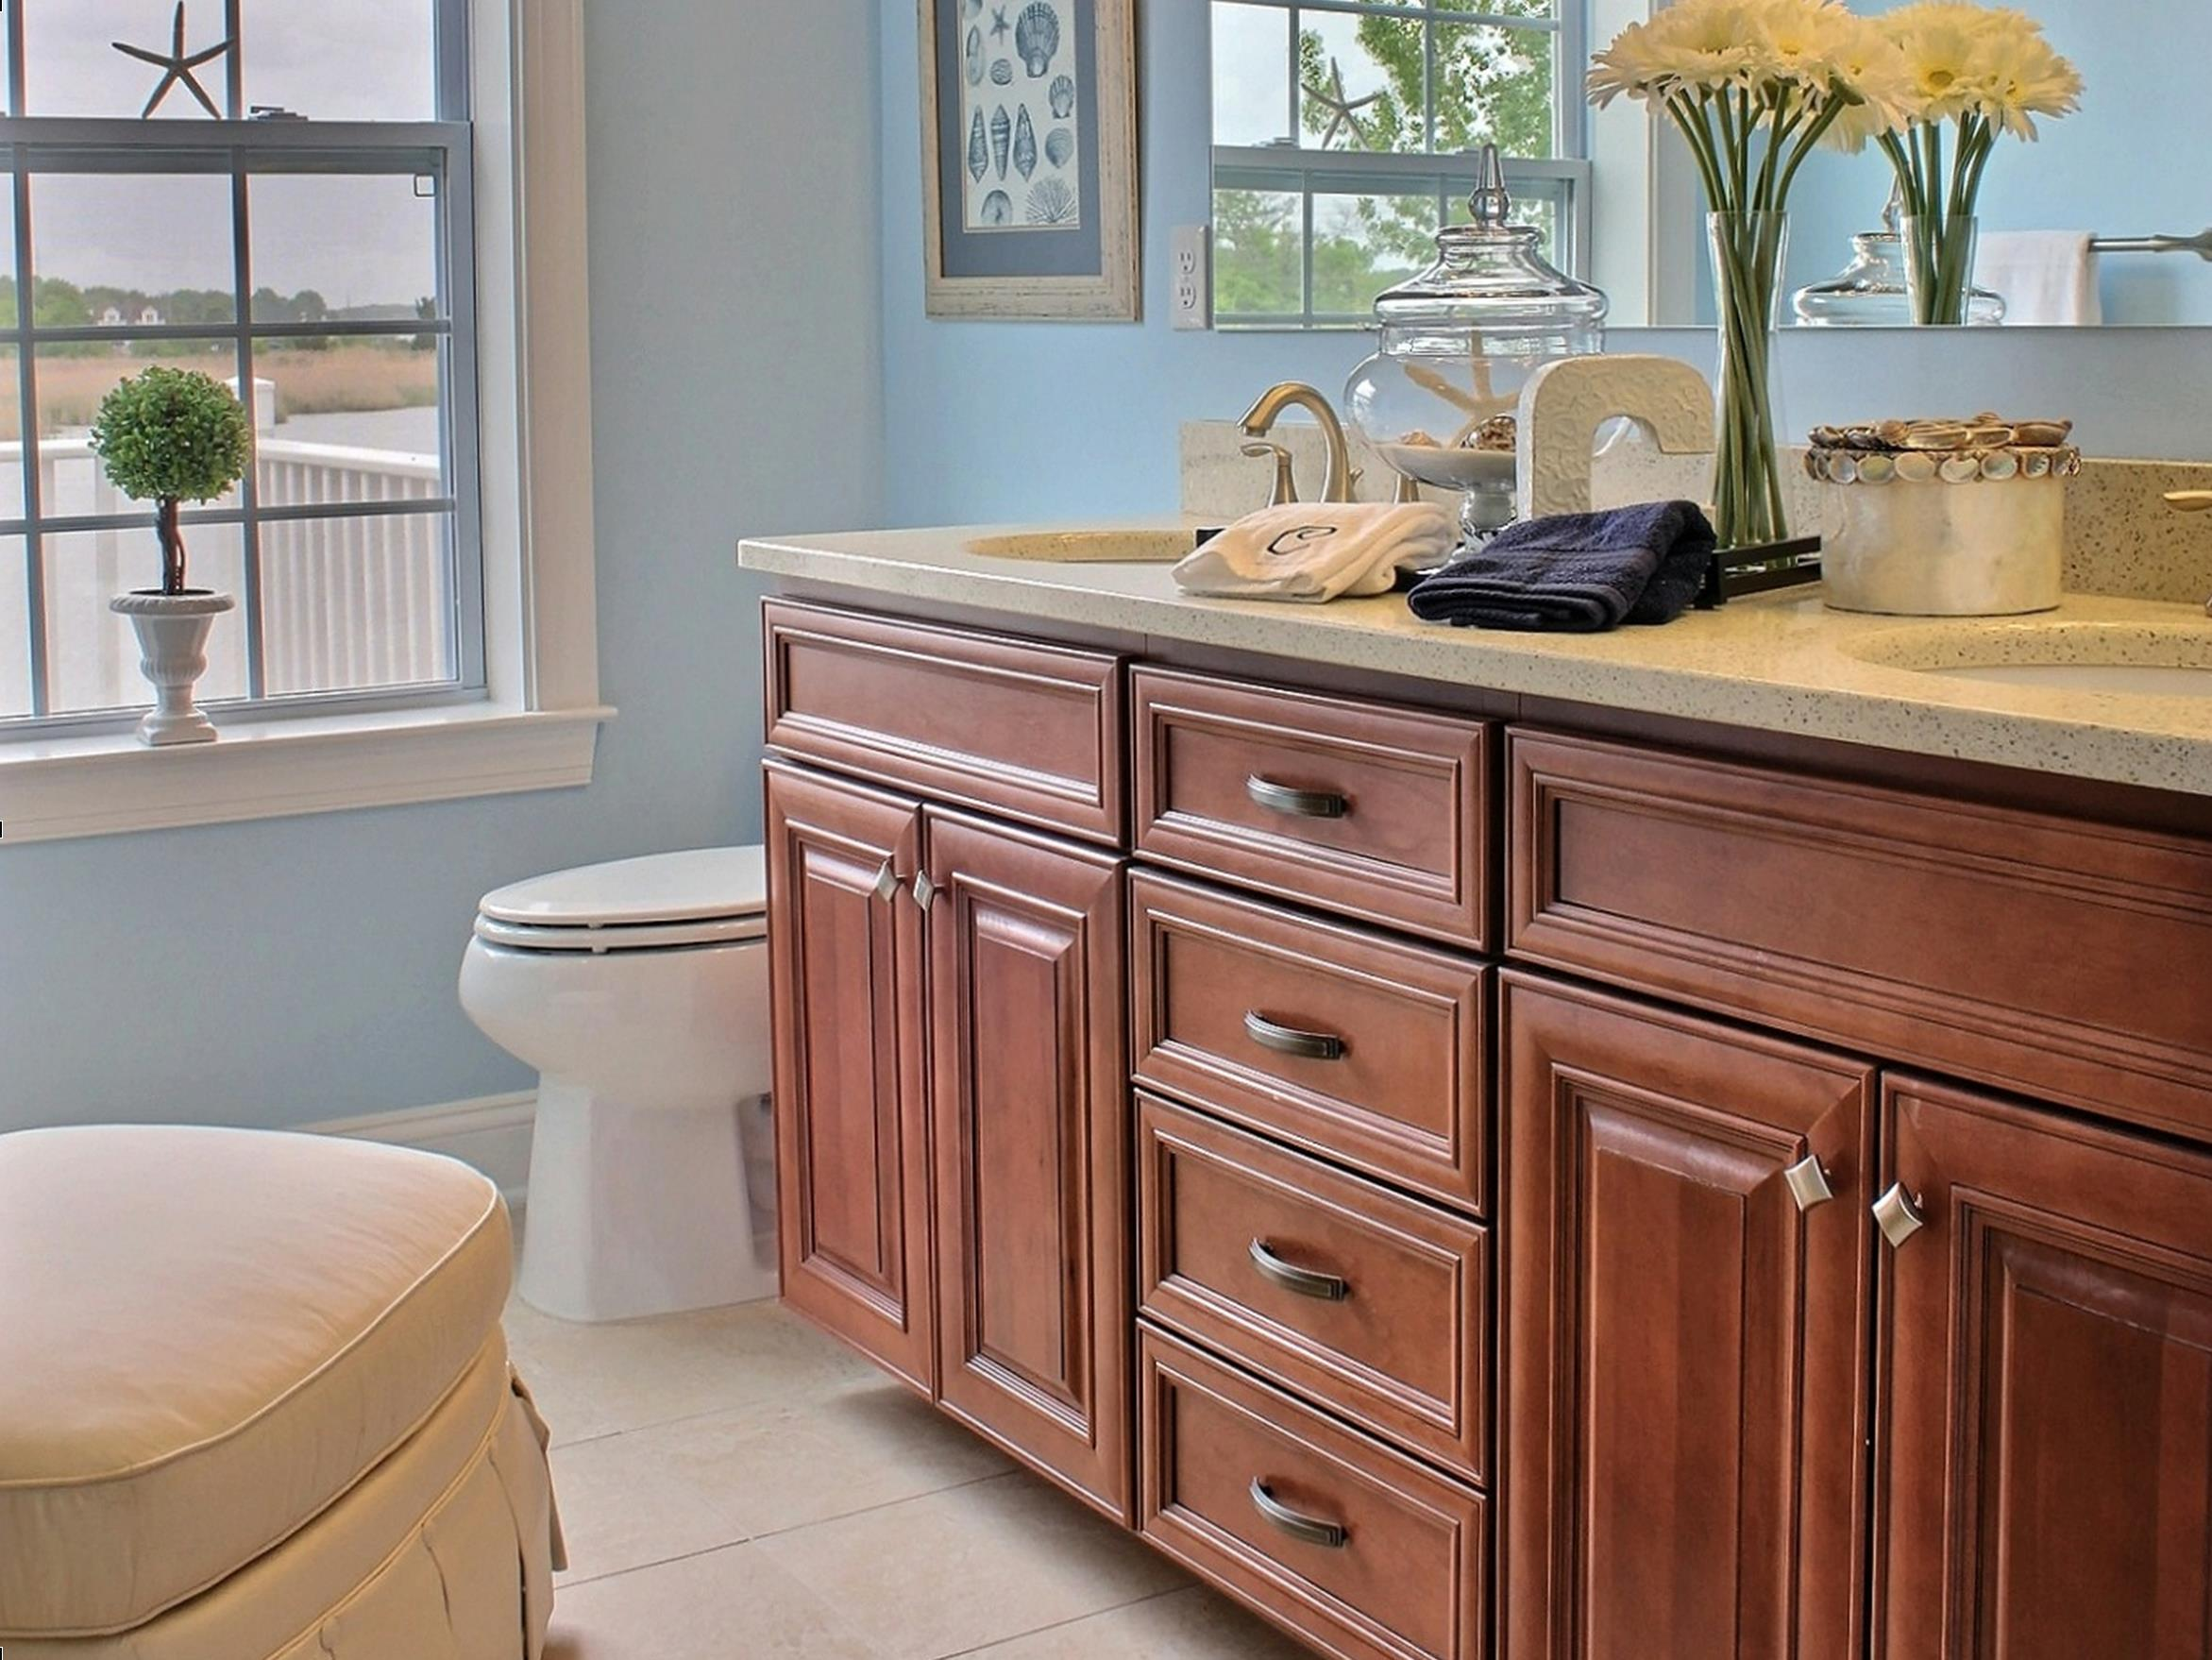 Bathroom featured in the Beacon Hill Classic By Covell Communities in Eastern Shore, MD